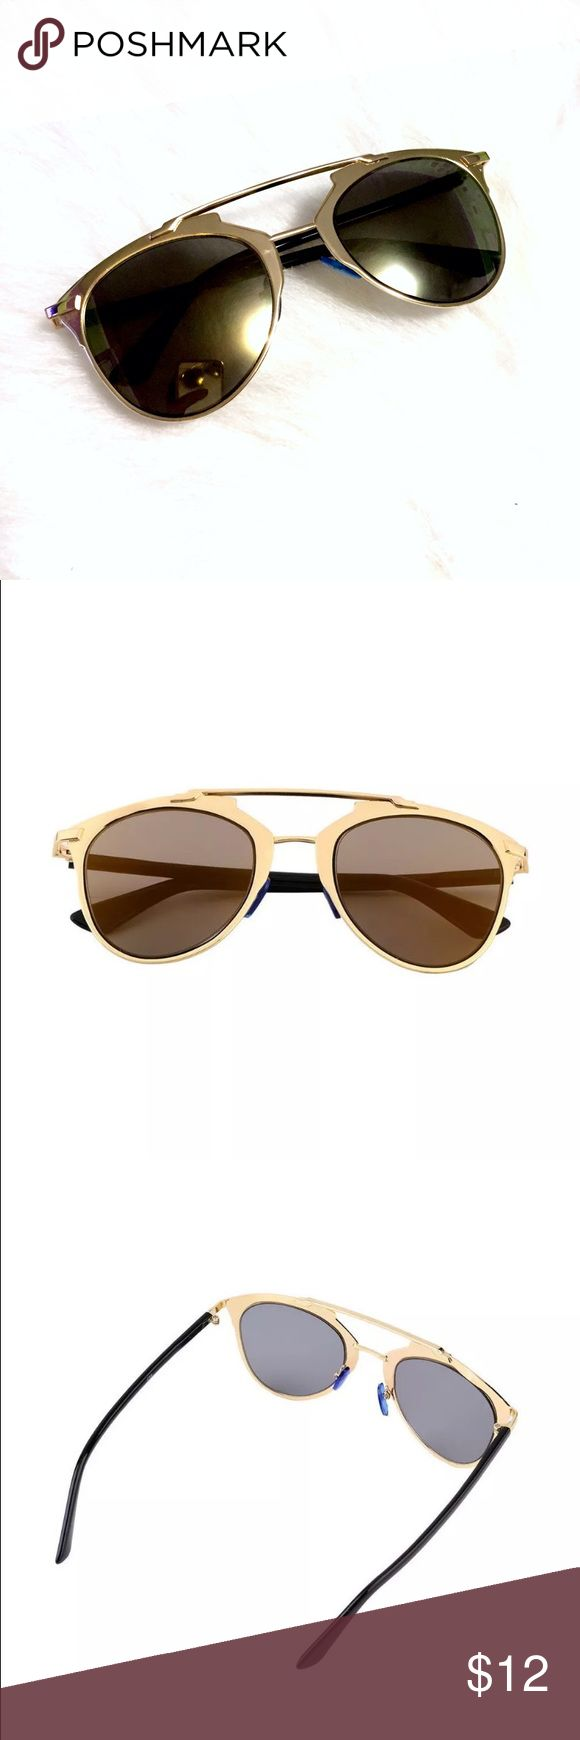 Gold & Dark Brown Mirror Cat Eye Sunglasses  Gold & Dark Brown Cat Eye Sunglasses, brand new. Gold trim frames and hinges with dark brown mirror lenses. Black temple and temple tips. Price is firm if purchased alone. ❣Discount applied if bundled with other items from my closet. Accessories Sunglasses